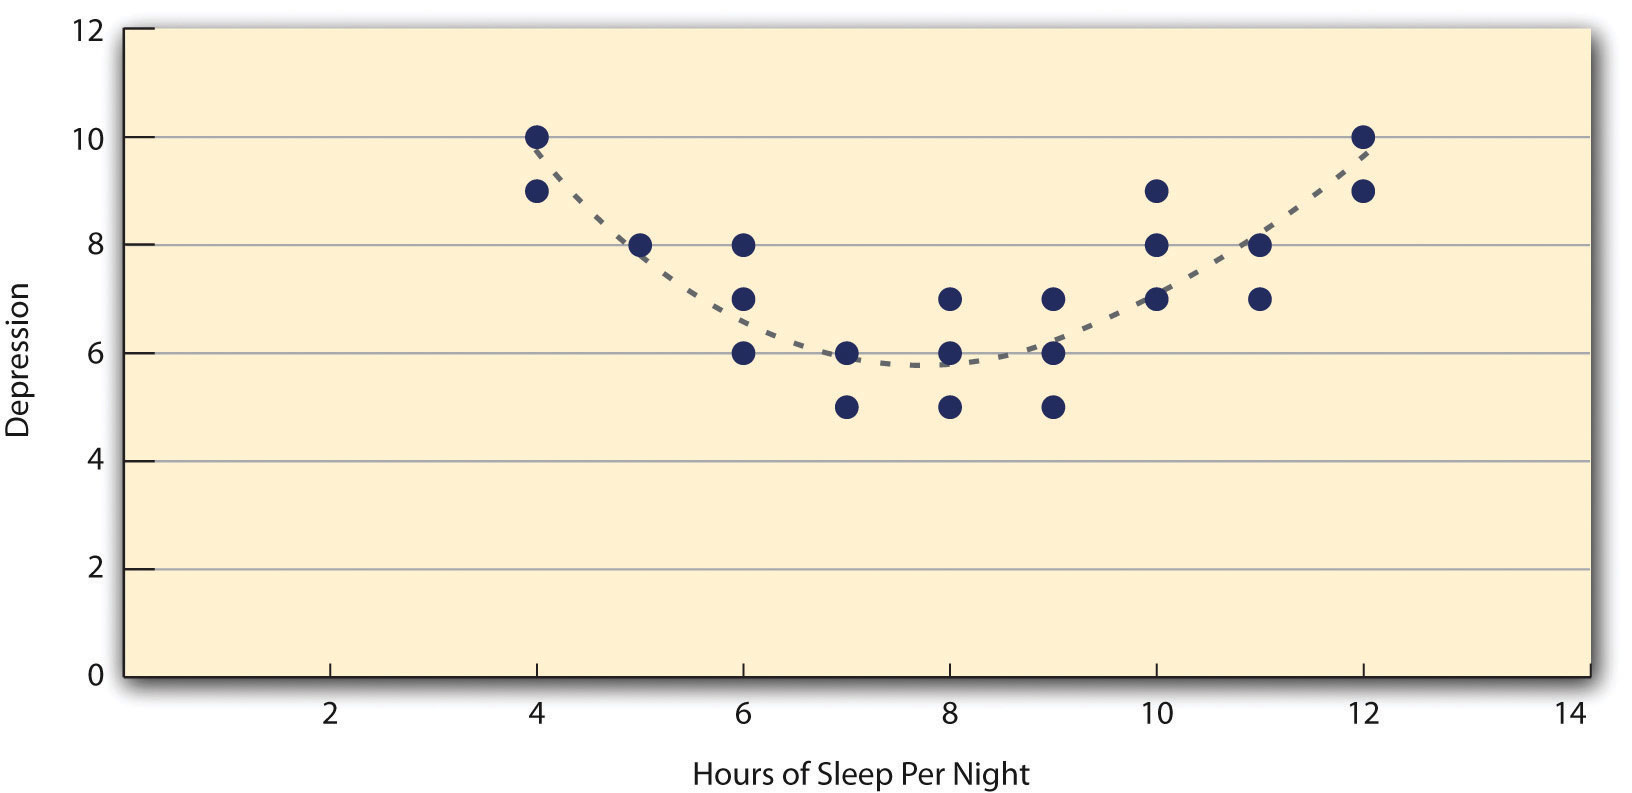 relationship between insomnia and depression psychology essay Home a level and ib psychology sleep disorders: insomnia sleep stress/depression isn't the this doesn't show a causal relationship between insomnia.